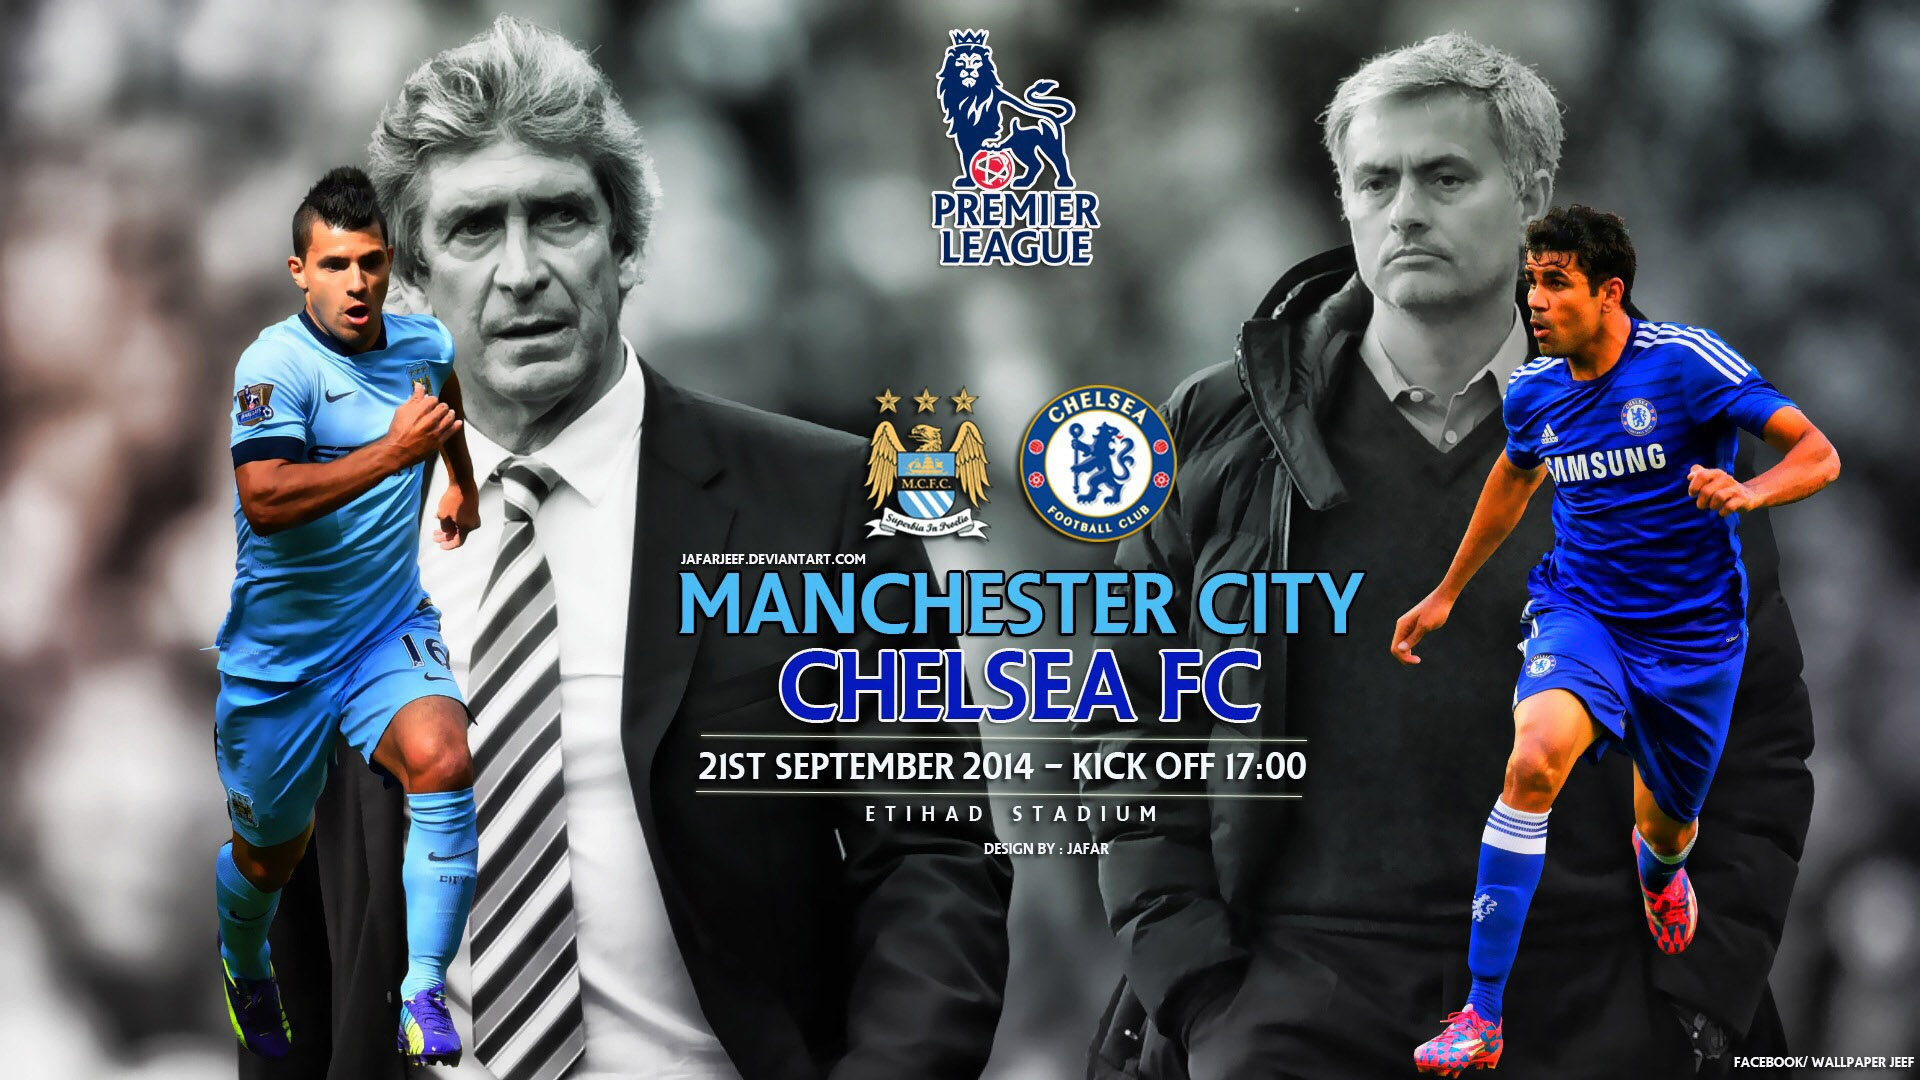 Chelsea Vs Man City: Chelsea Vs Manchester City 2015